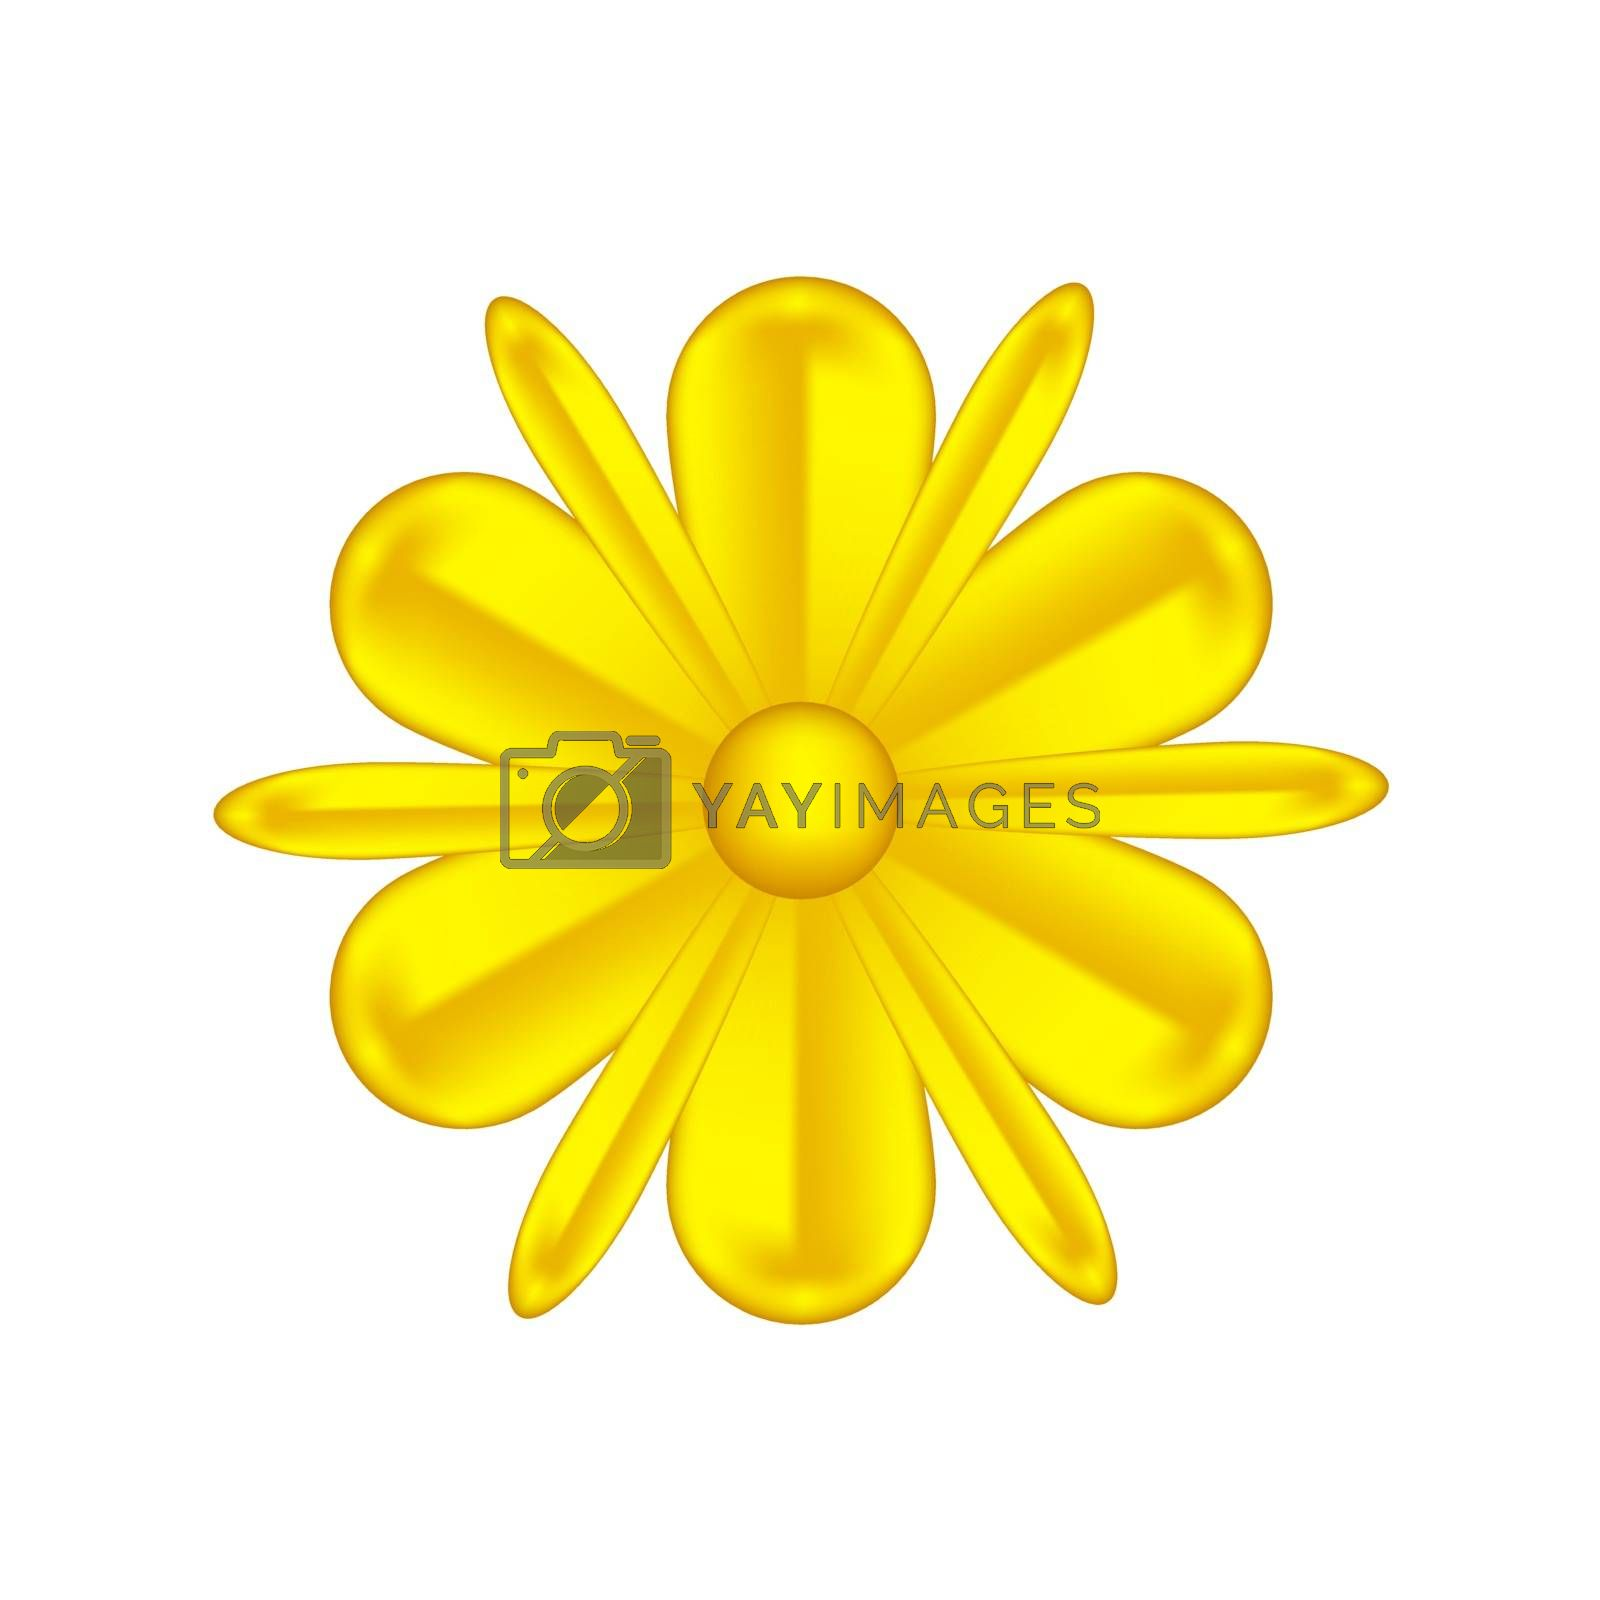 single flowers gold ornate isolated on white background, luxury flower petal gold simple, golden flowers object metal sculpture, illustration of deluxe golden flower, clip art flowers luxurious gold by cgdeaw